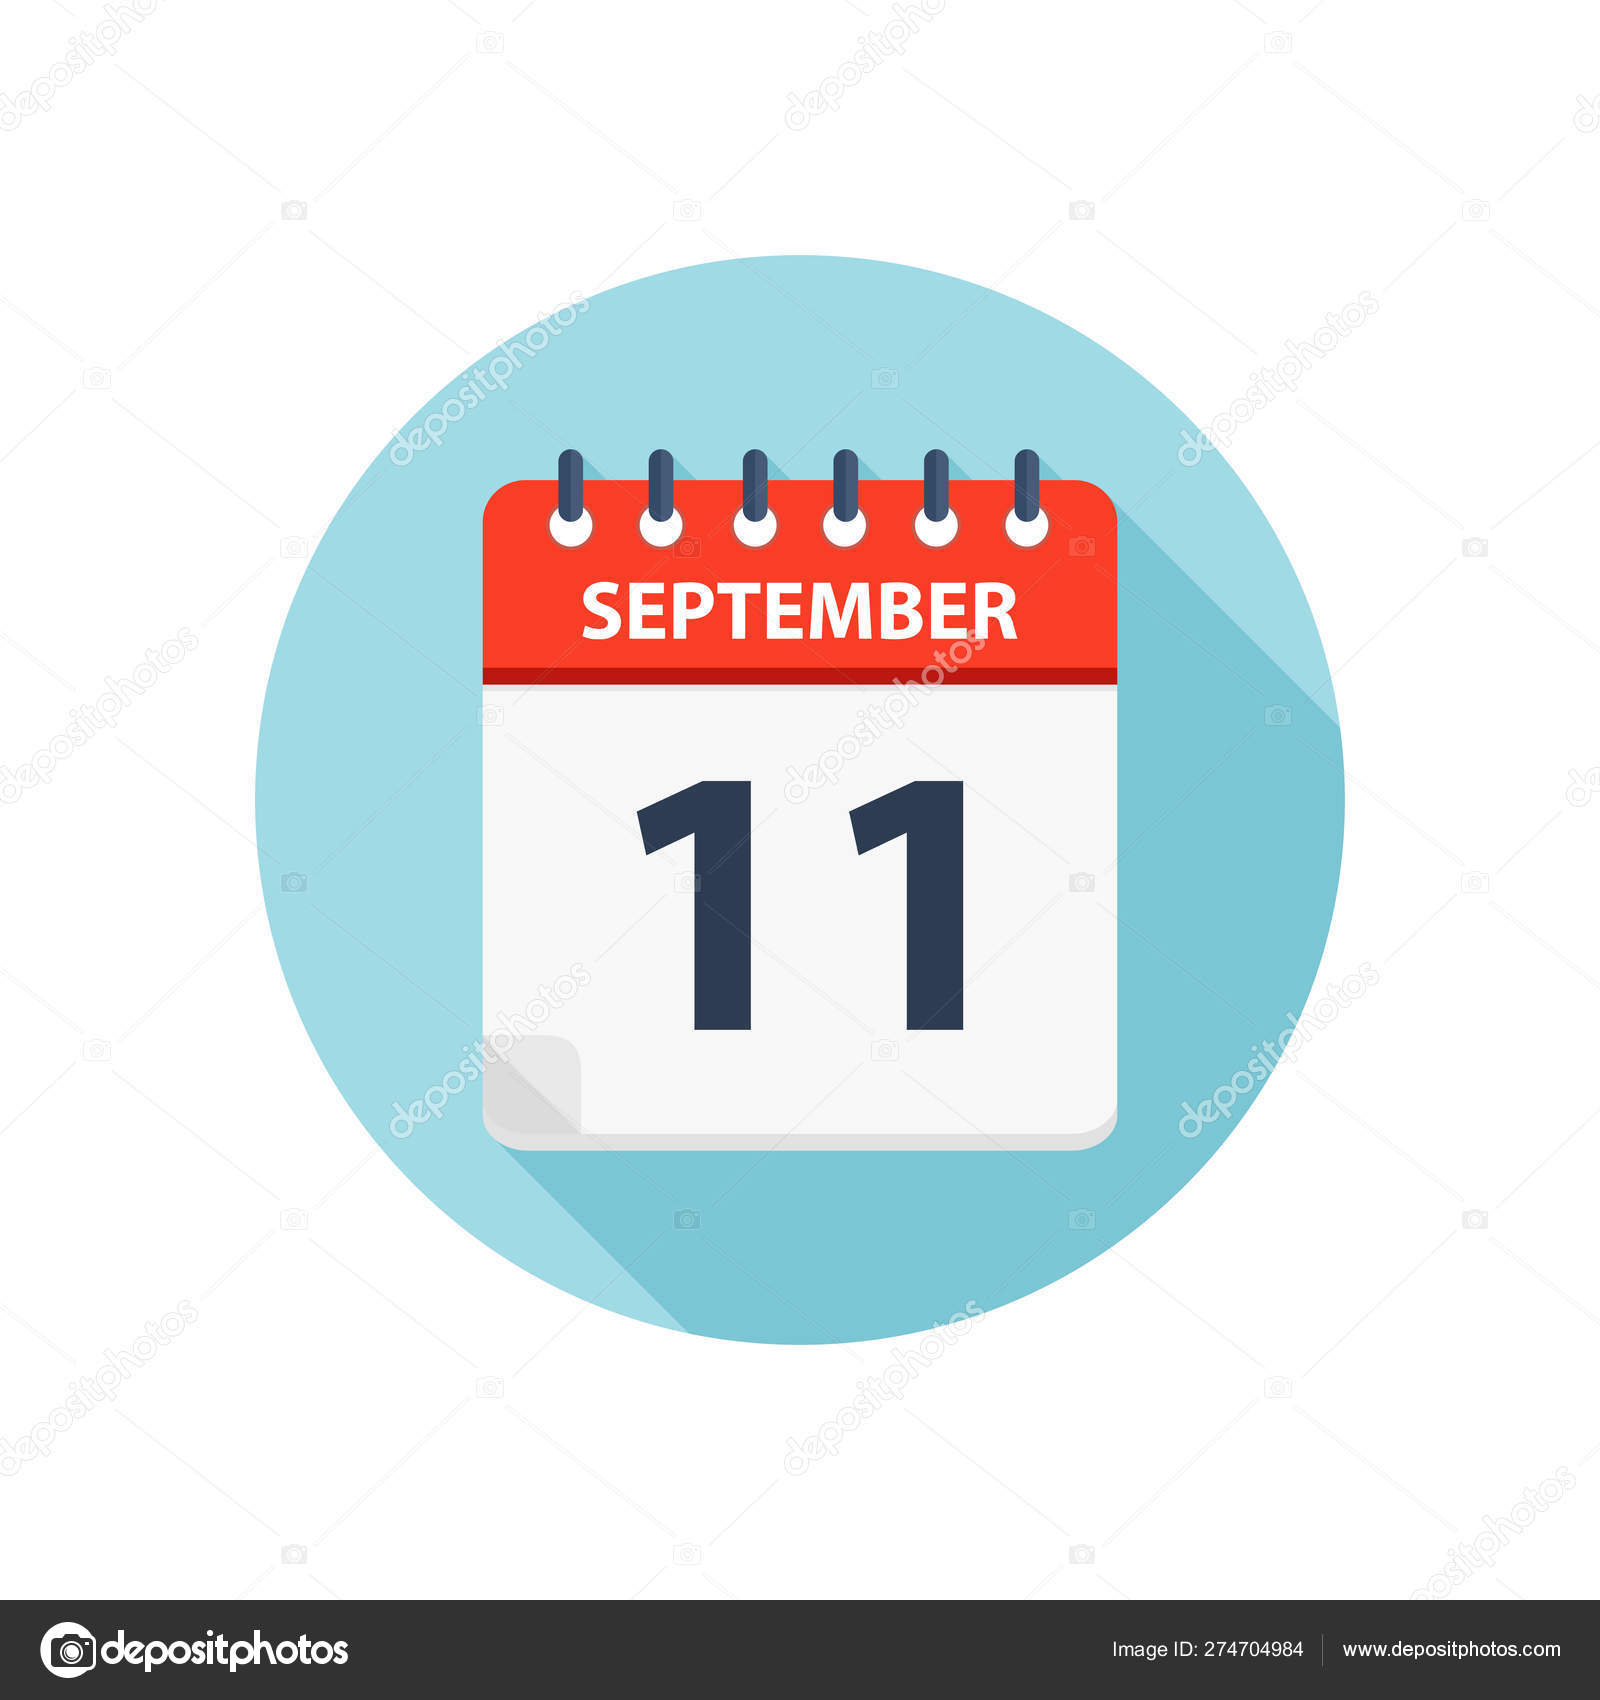 September 11  Calendar Icon  Round Calendar Design pertaining to Round Calendar Icon